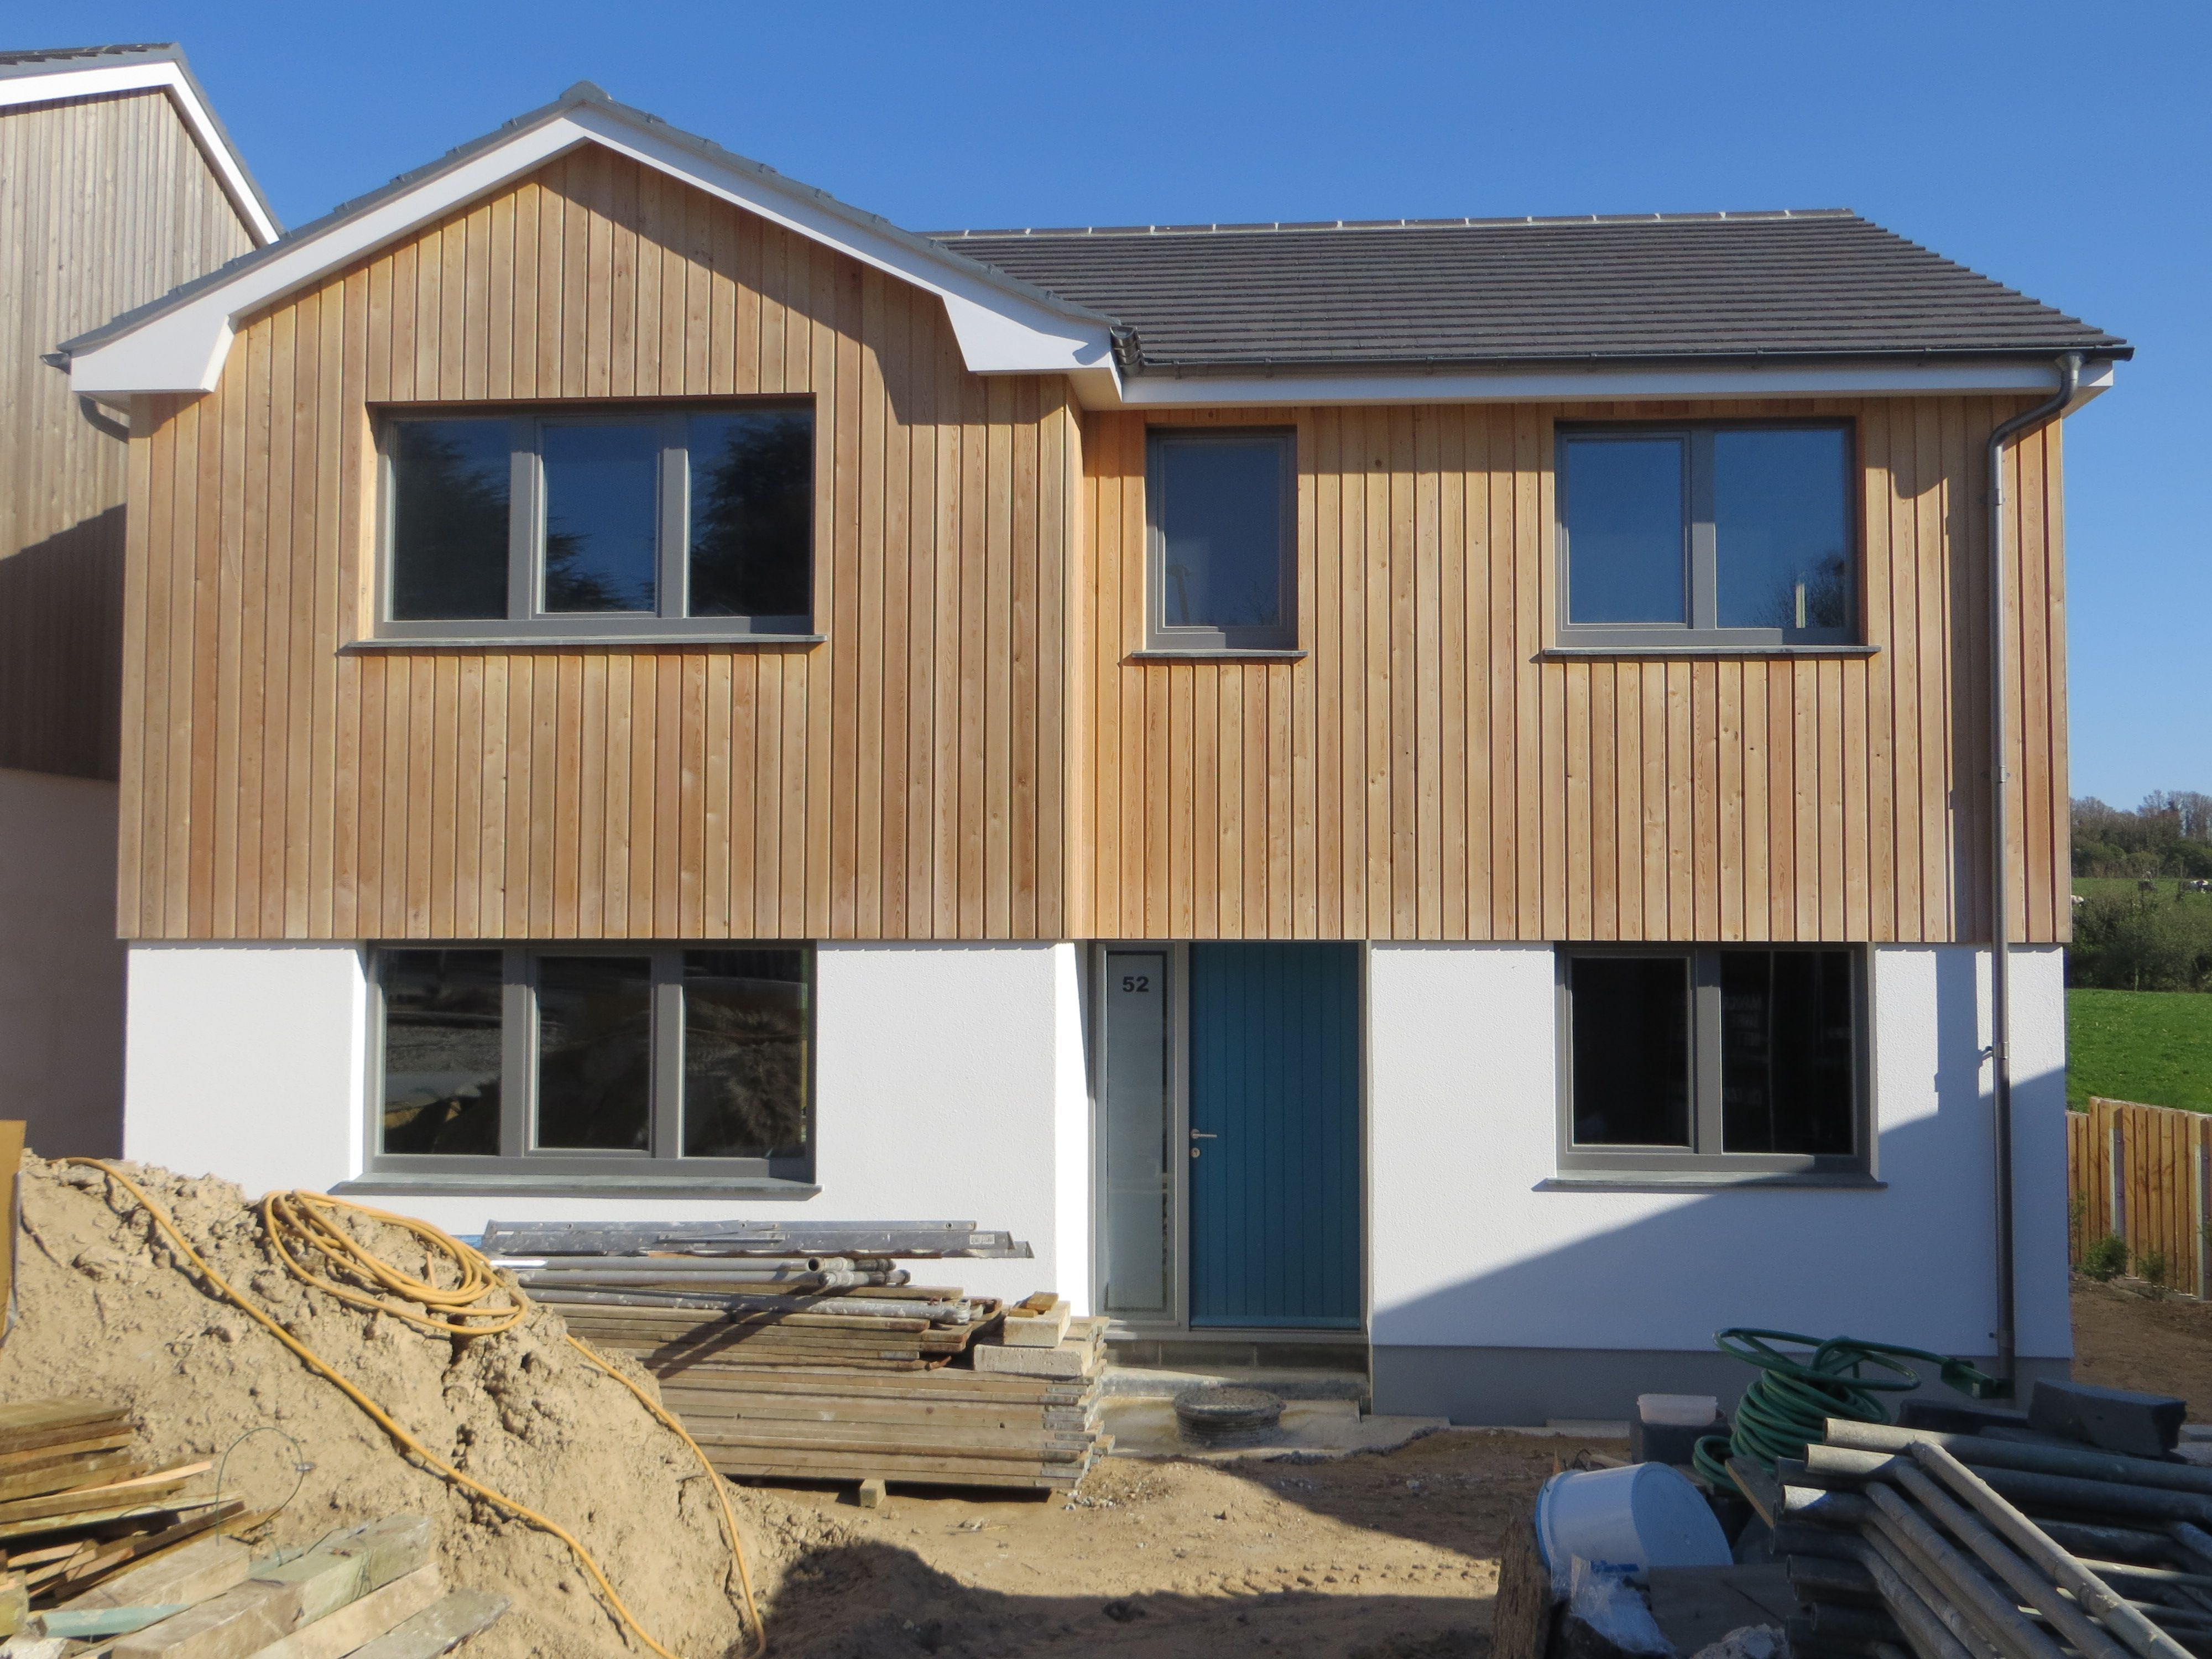 Wunderbar Siberian Larch Cladding, 4/5 Bed New Build In Rock, Cornwall.